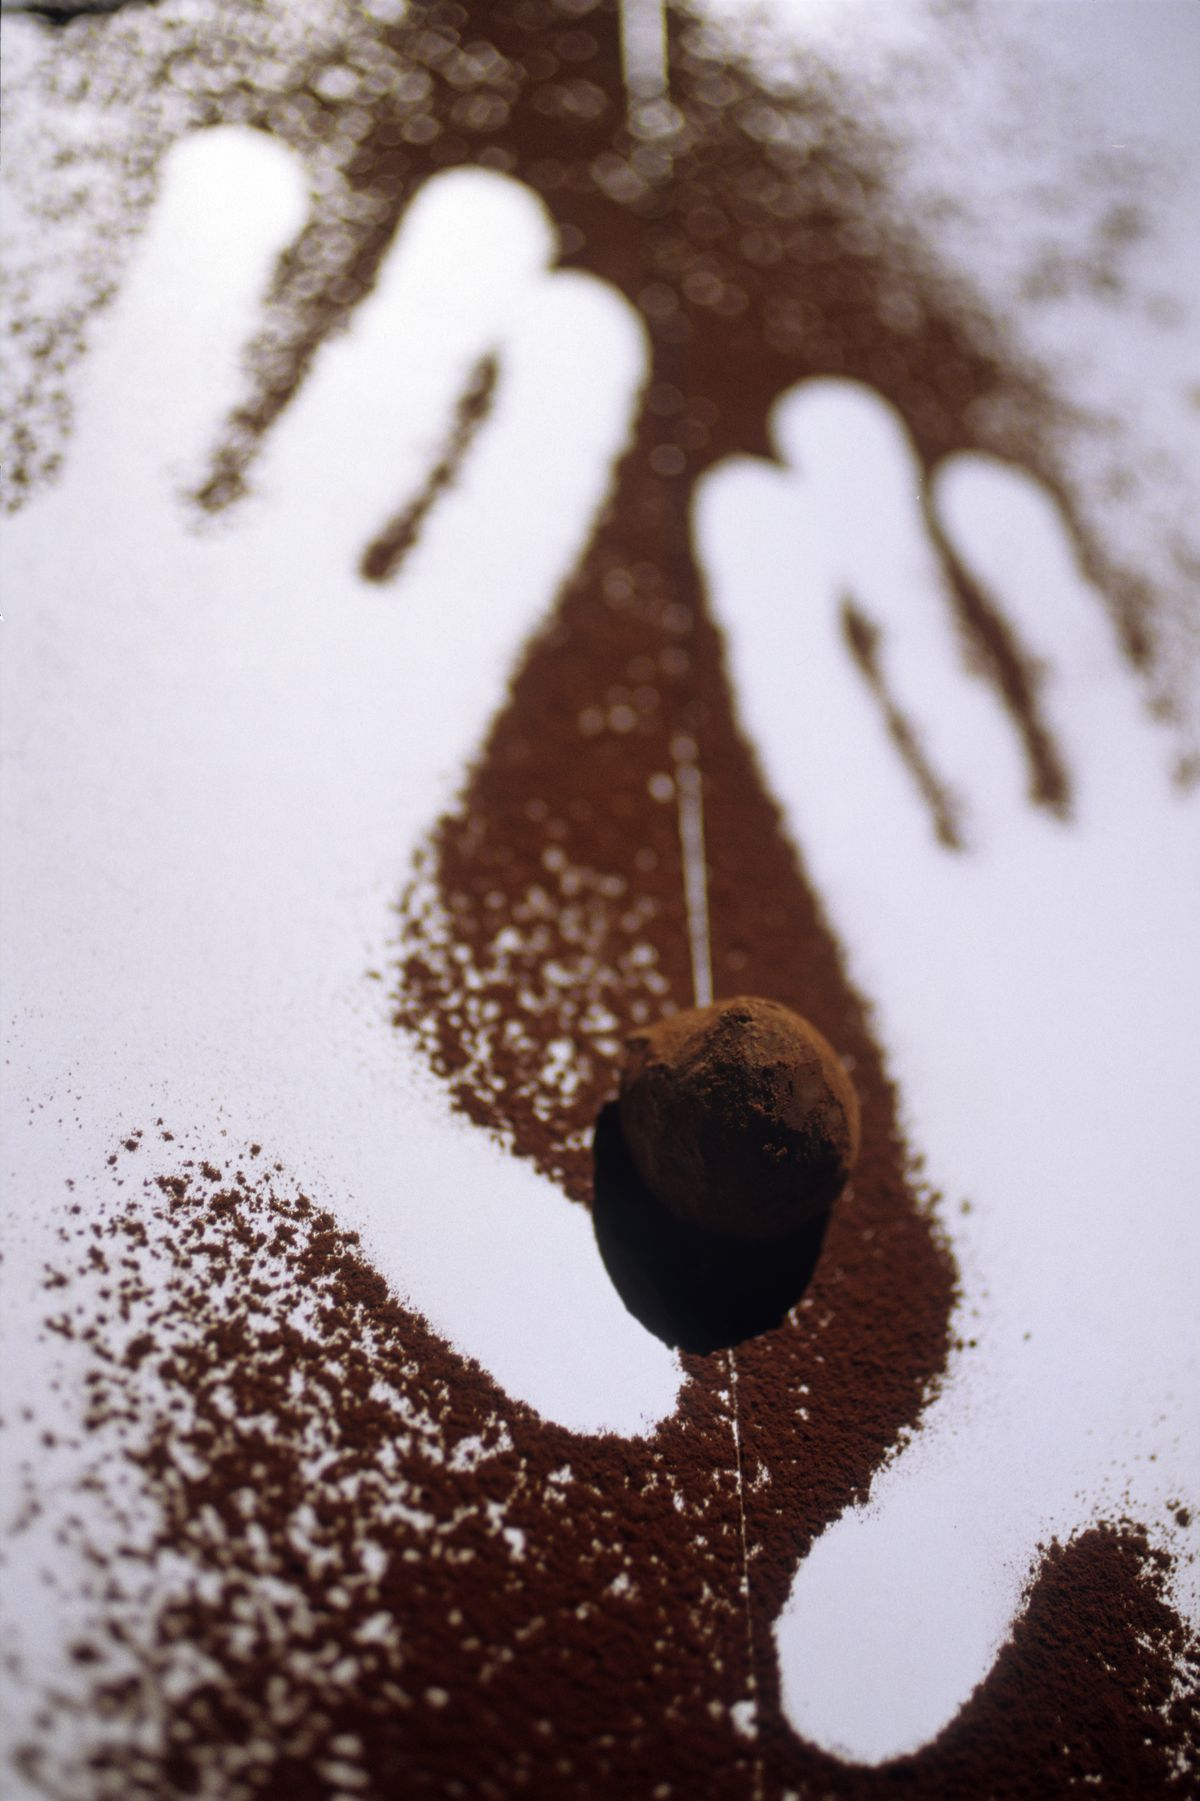 chocolate truffle flanked by outlines of hands in cocoa powder